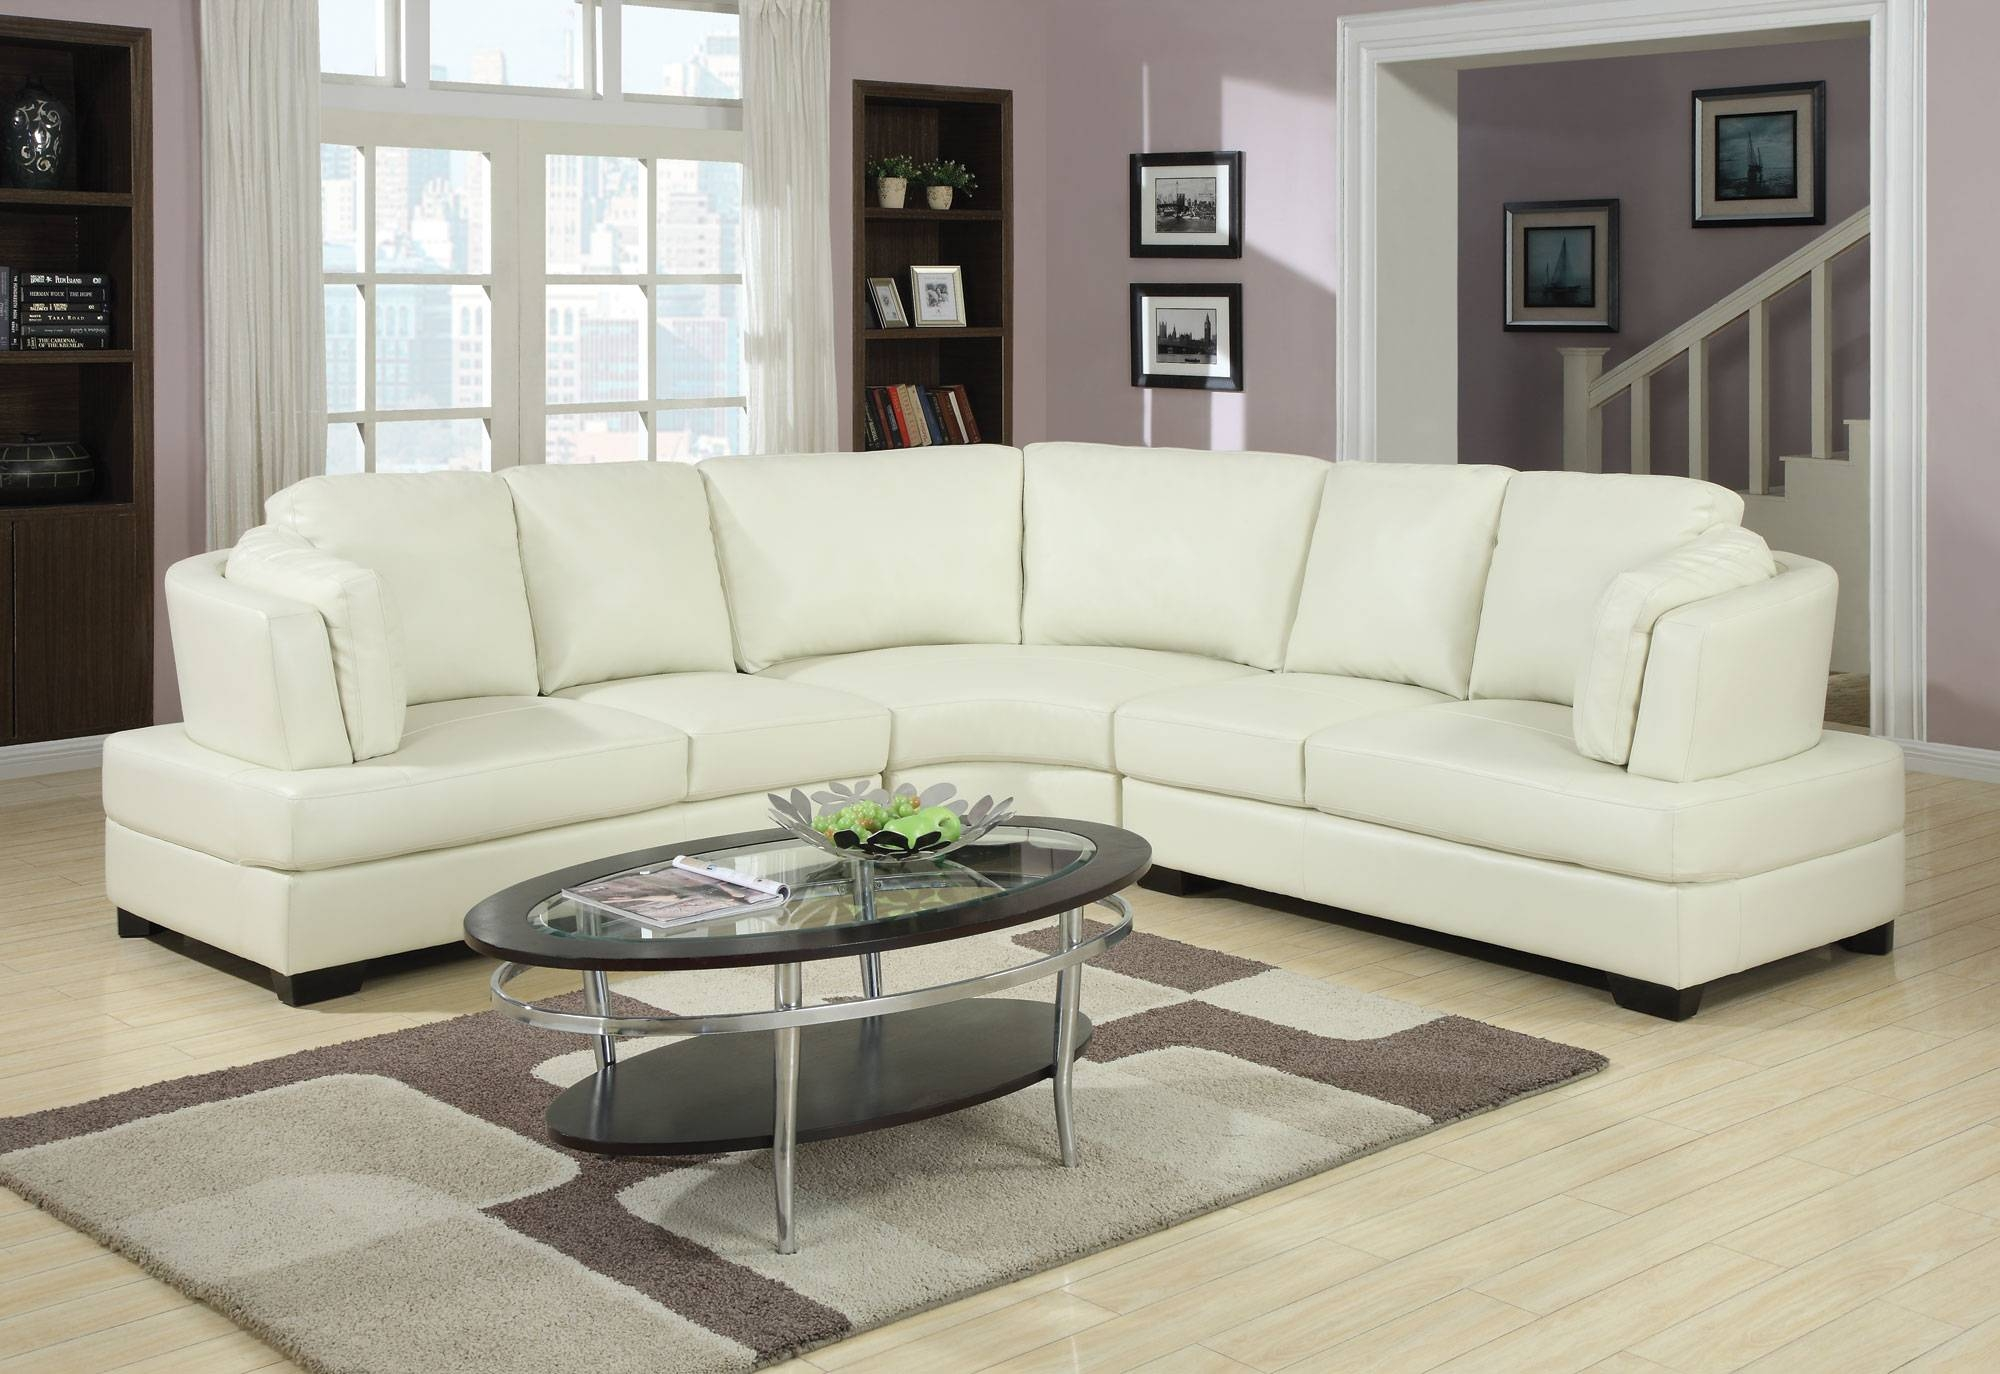 Furniture: Luxury Curved Sectional Sofa For Living Room Furniture regarding Oval Sofas (Image 9 of 30)